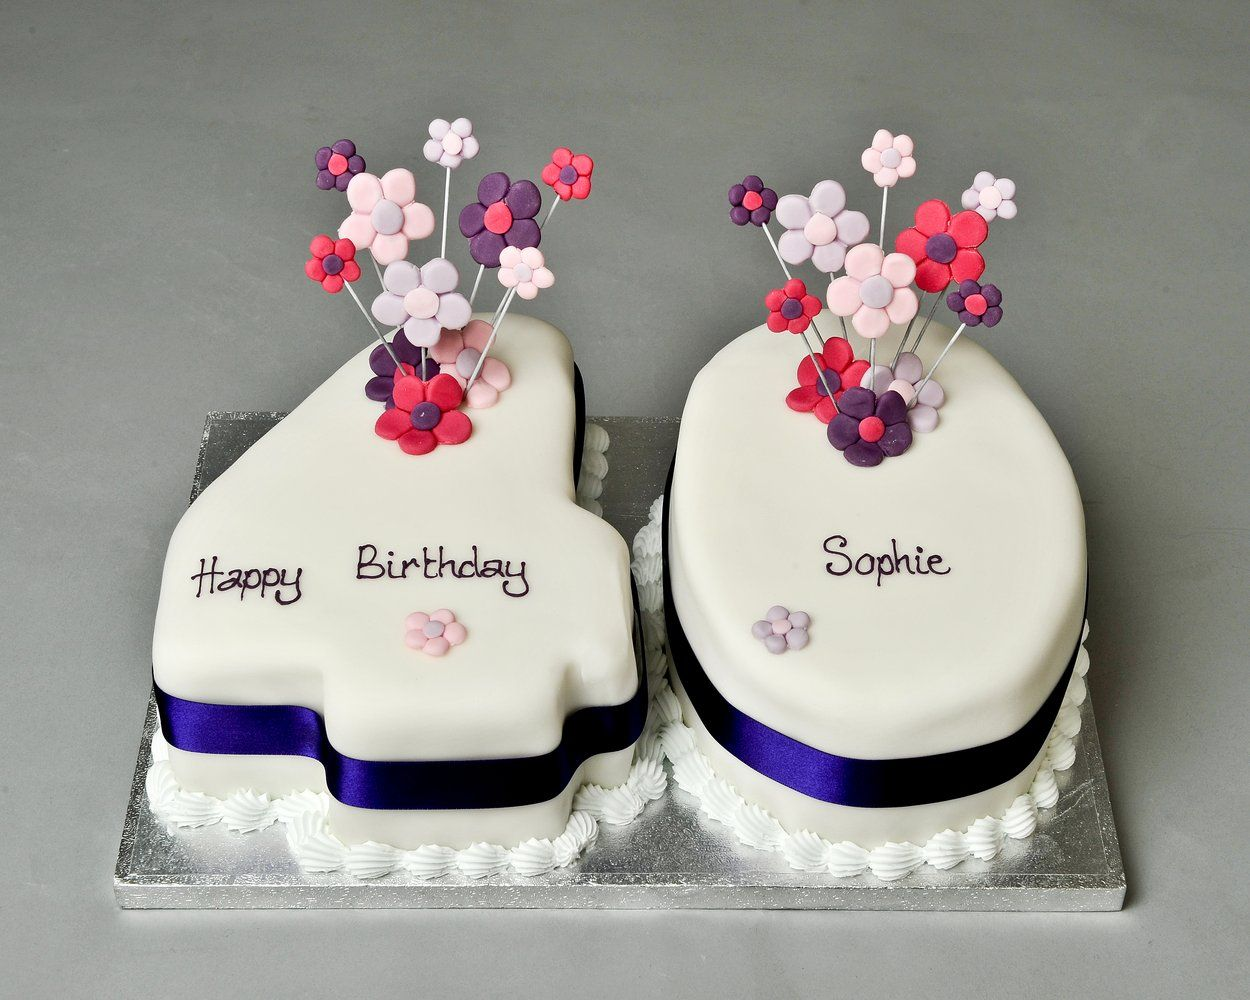 birthday cakes for women birthday cakes women celebration on birthday cakes to order in aberdeen